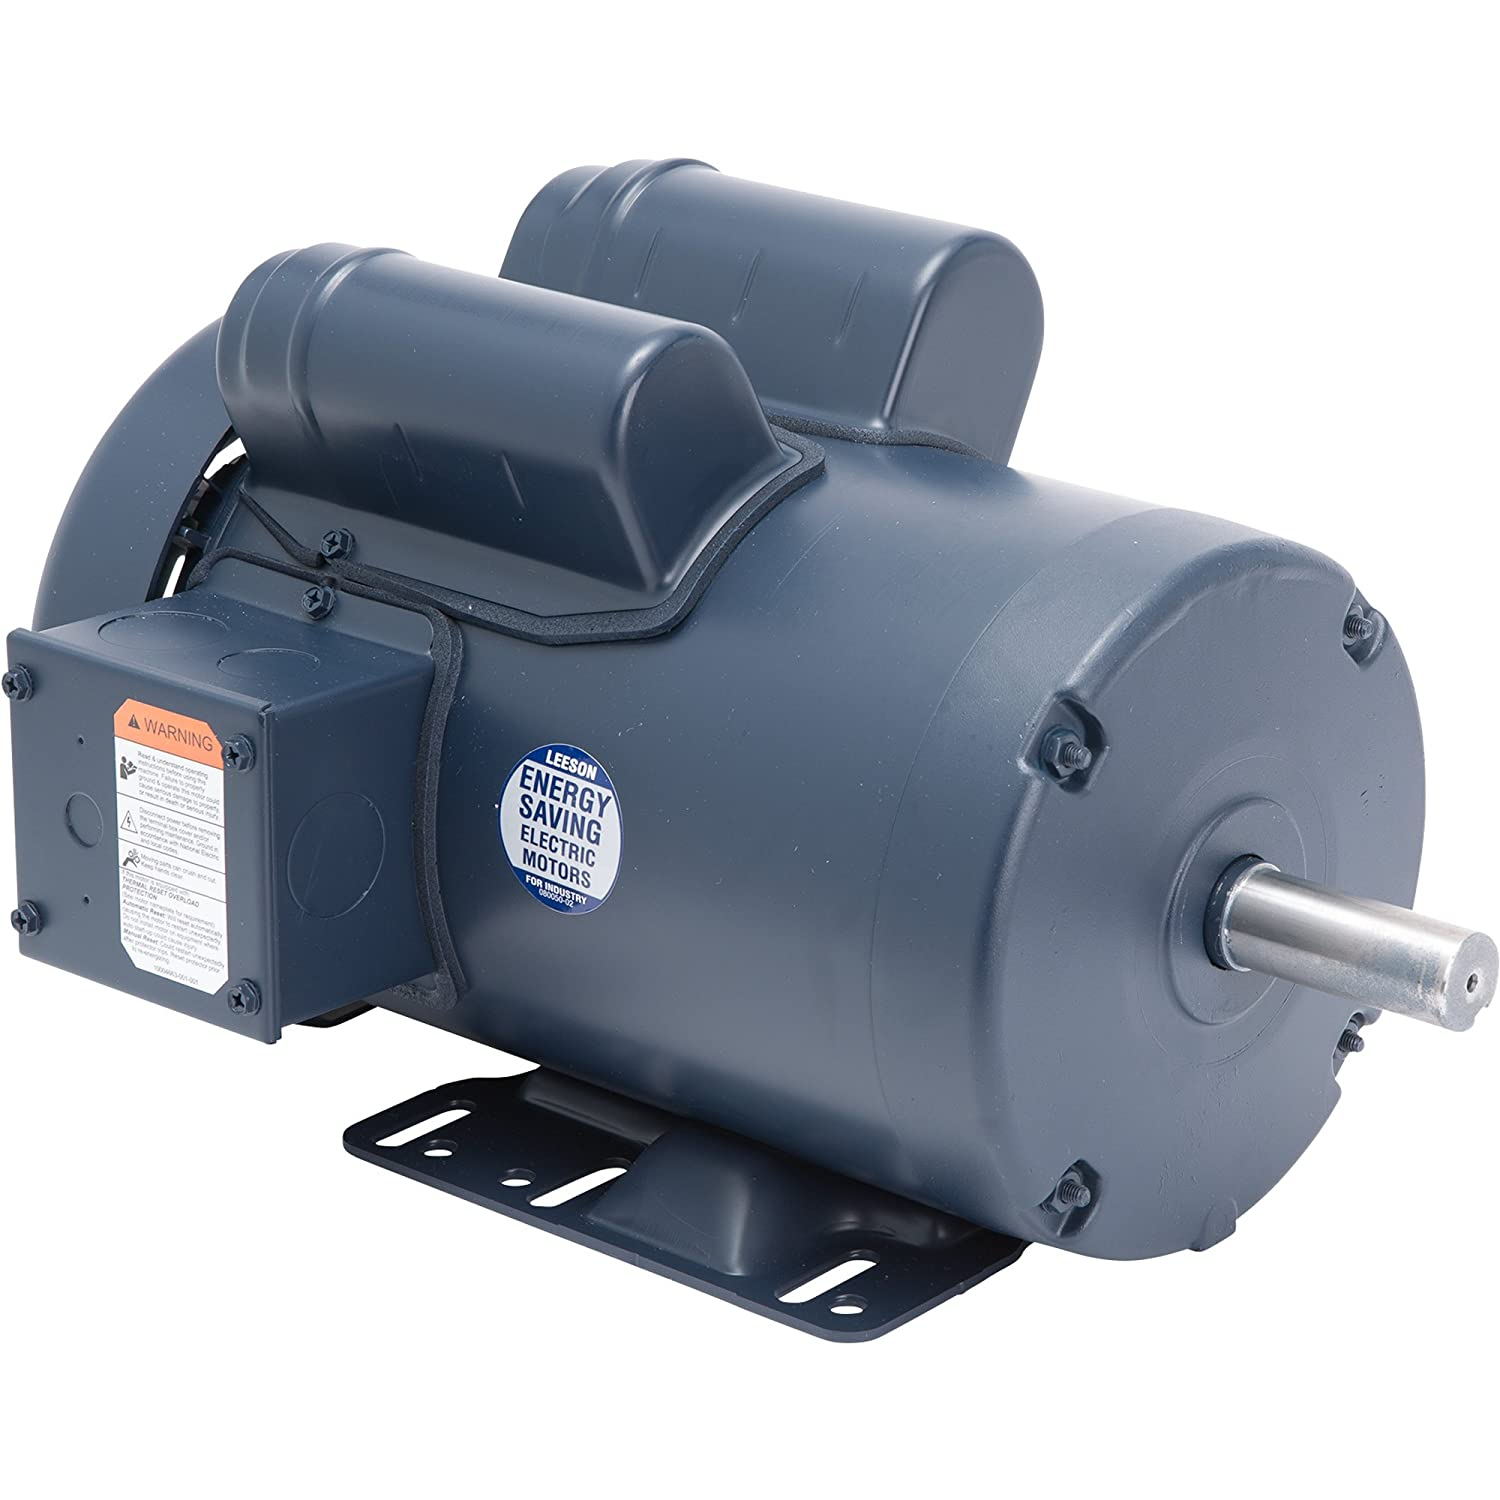 Leeson Woodworking Electric Motor - 3 HP, 3,450 RPM, 230 Volts, Single Phase, Model Number 120341